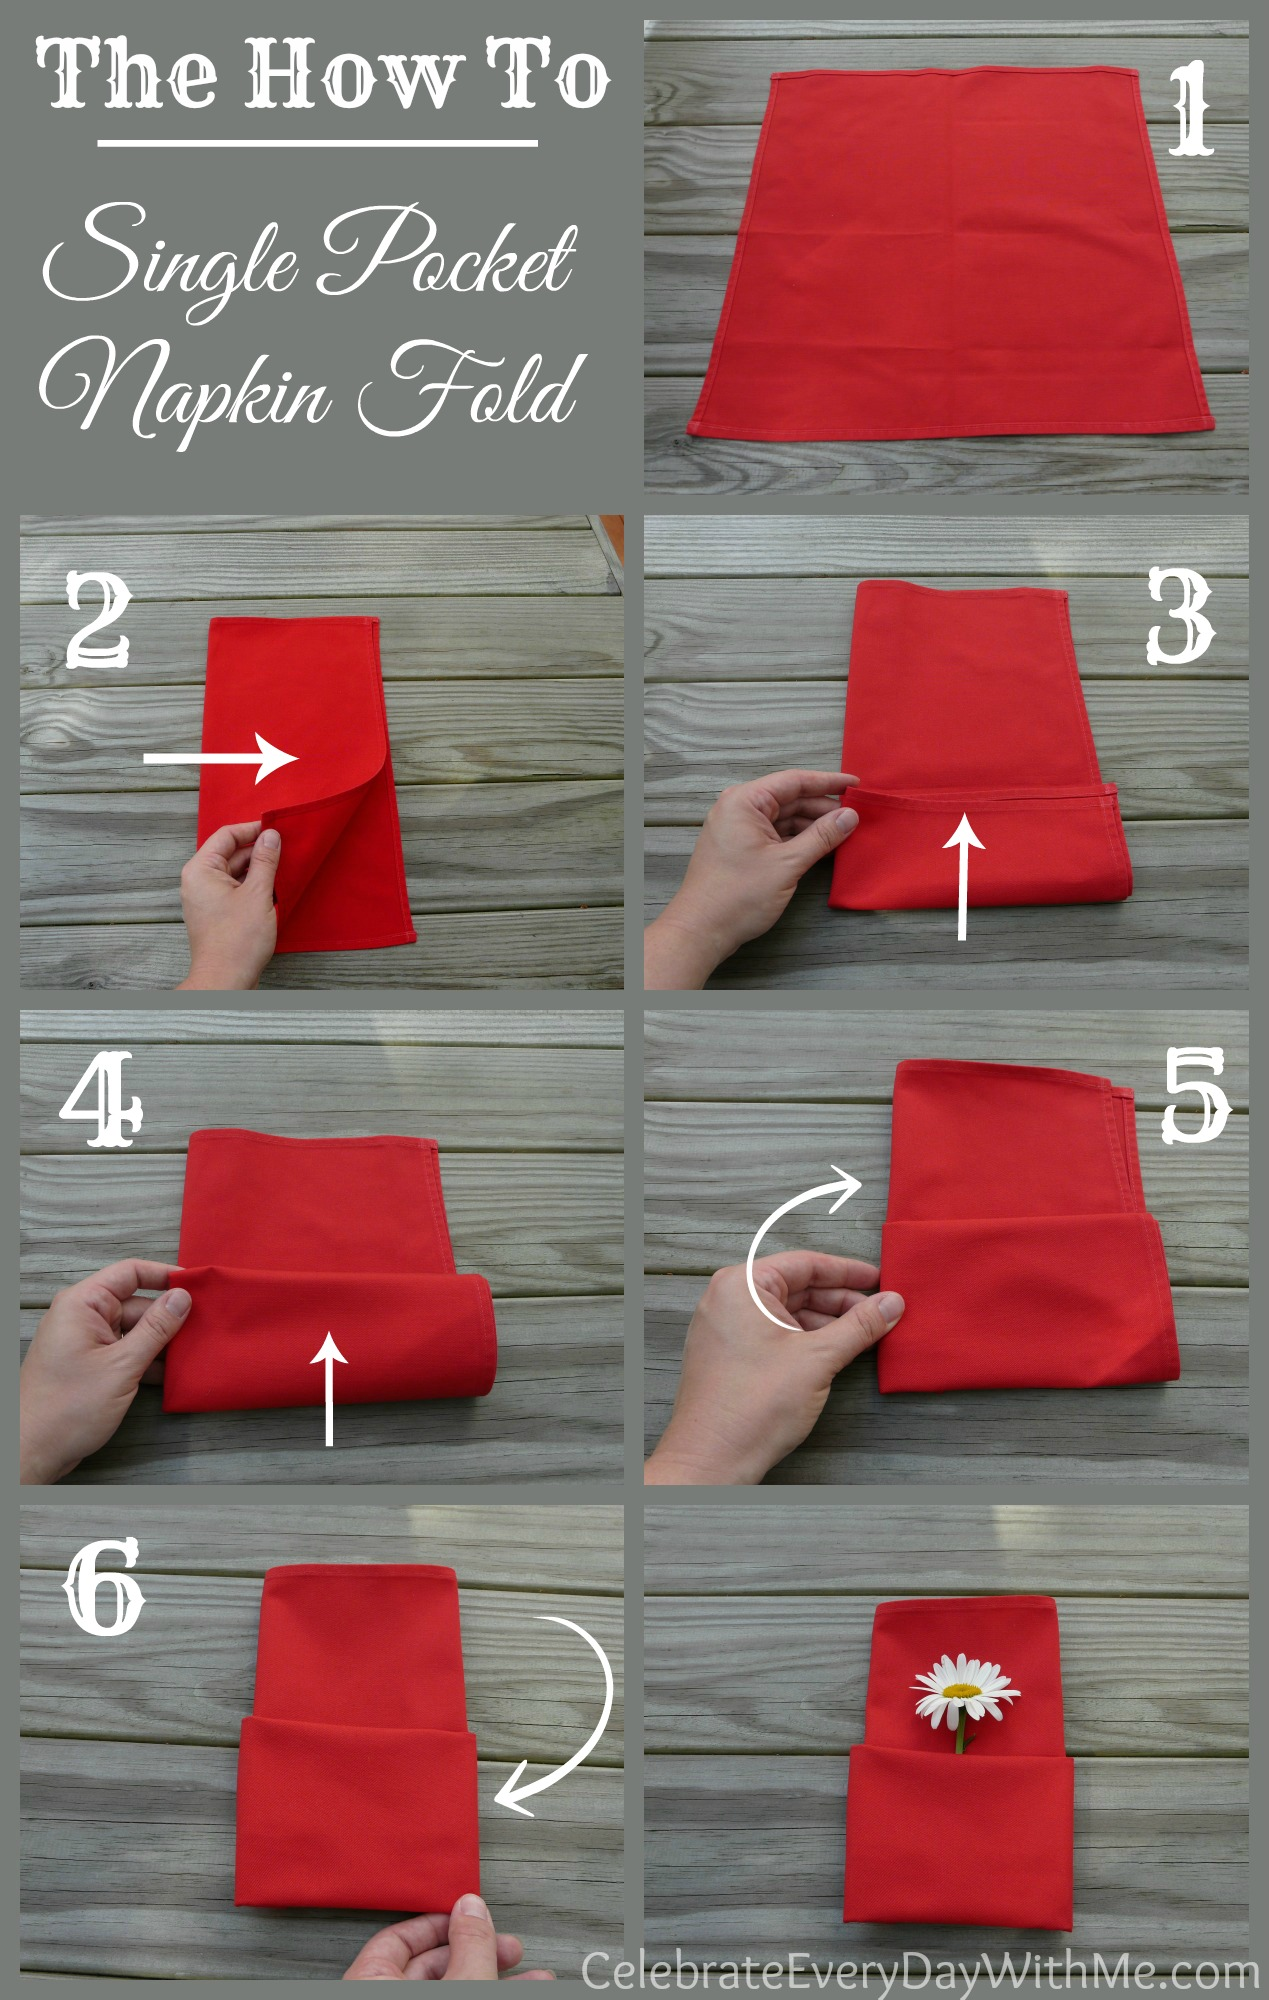 How to Fold an Origami Heart Envelope | 2000x1269